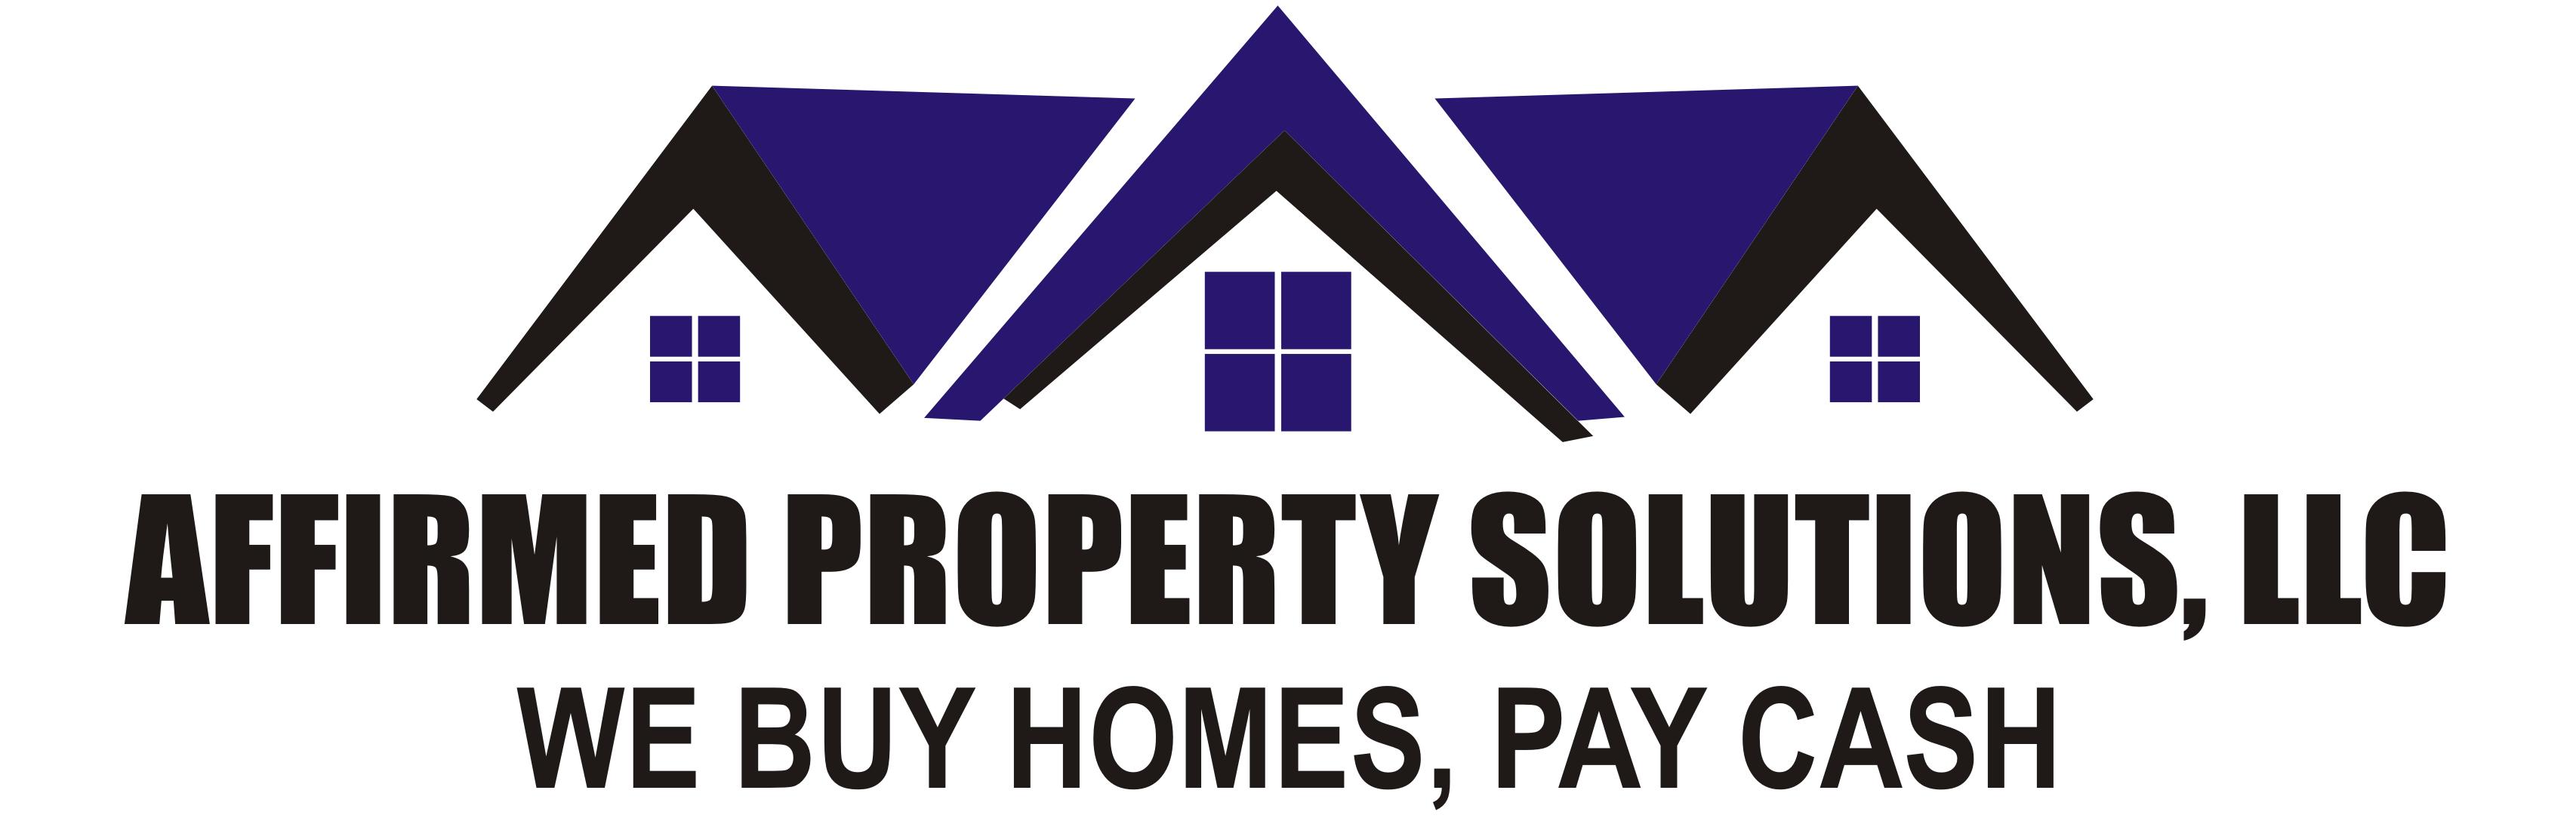 Affirmed Property Solutions, LLC